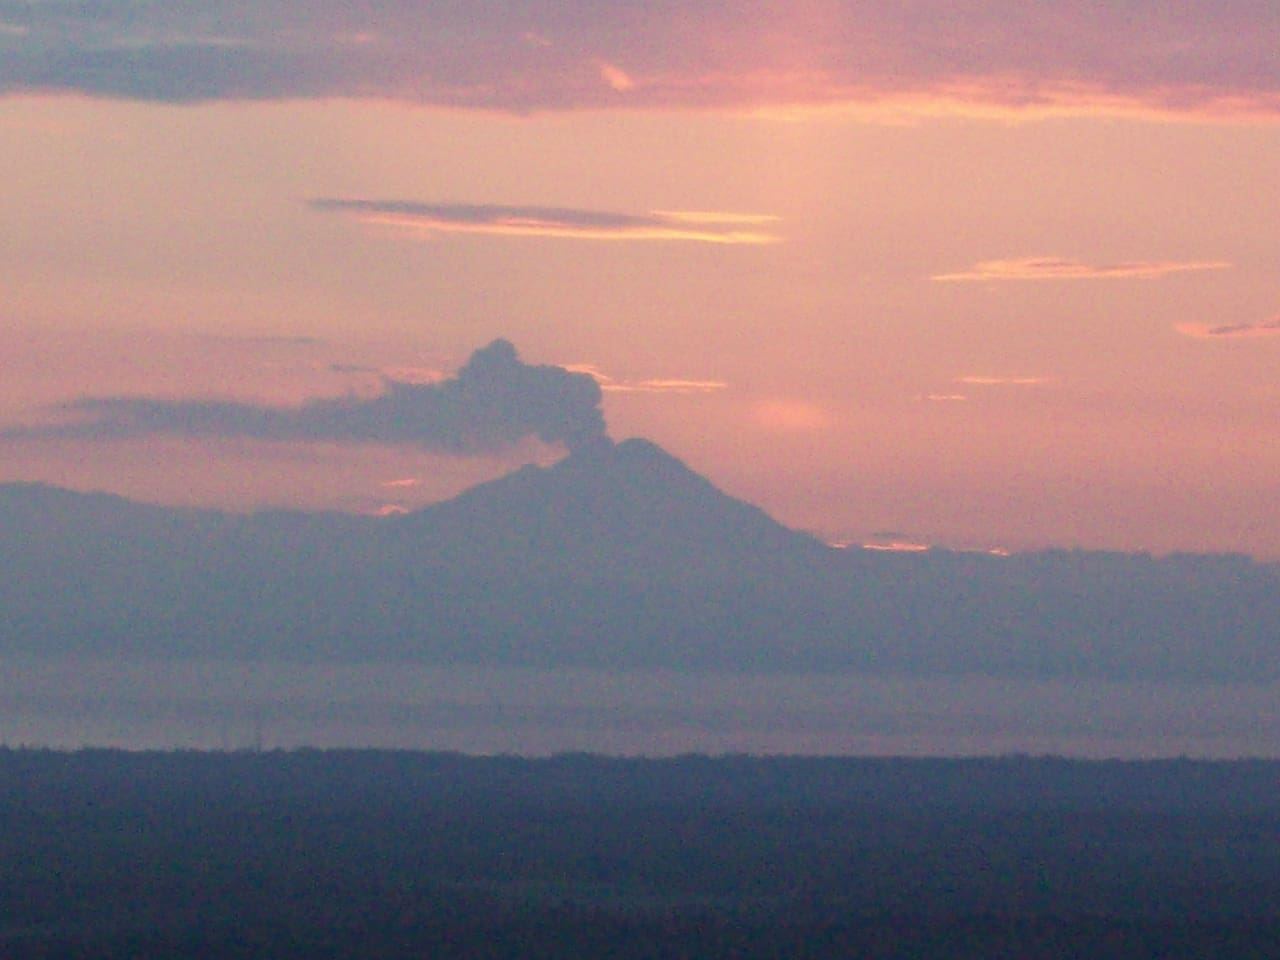 We see three active volcanoes from the property